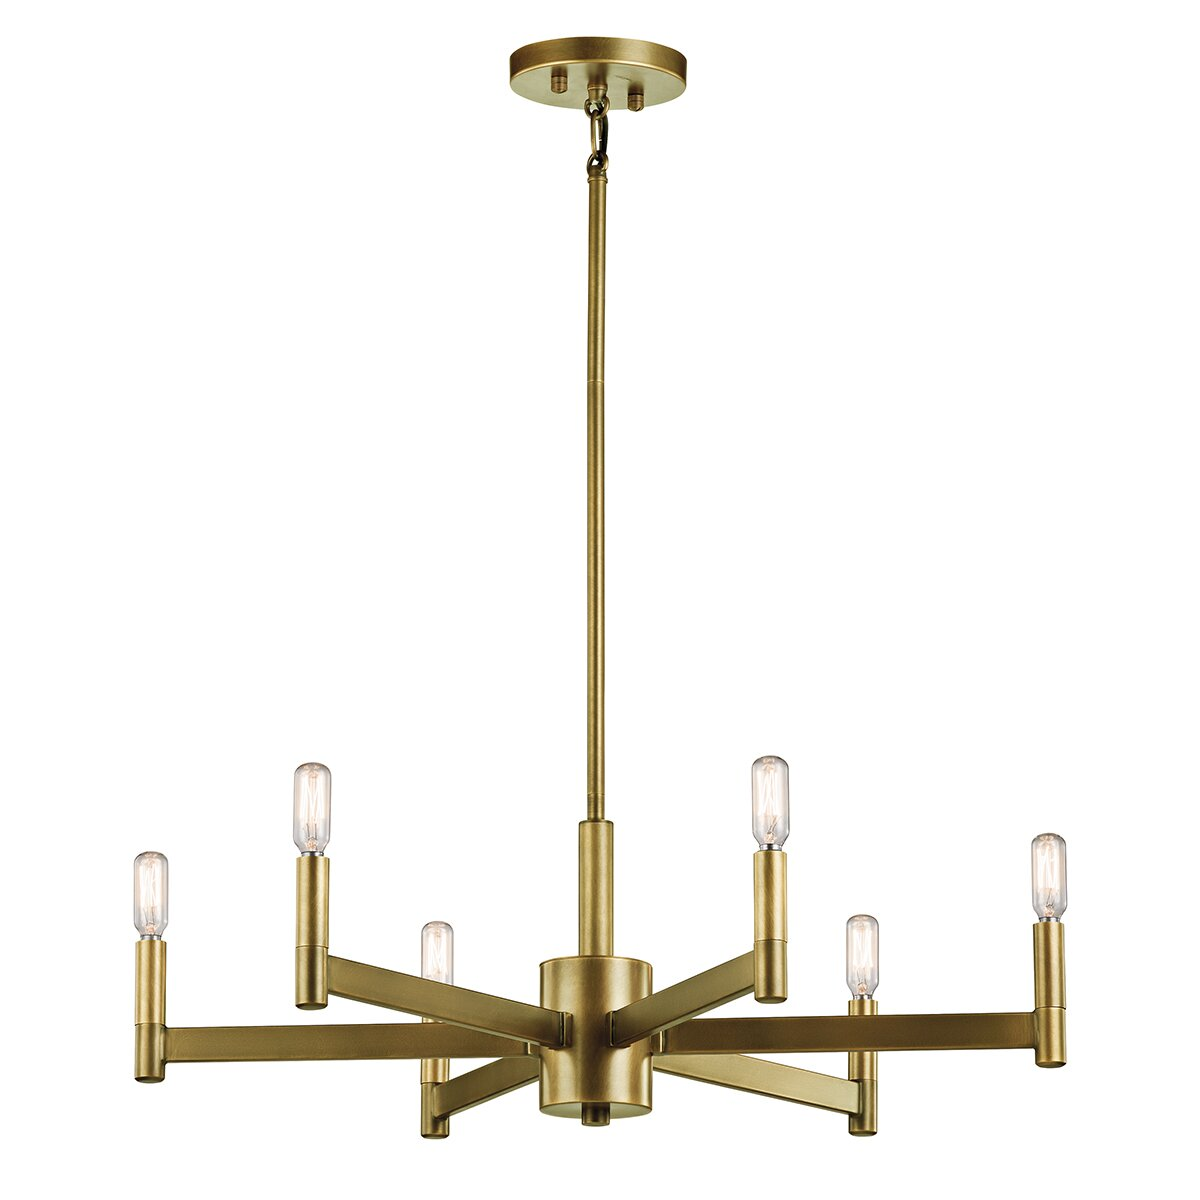 Budget-friendly brass chandeliers